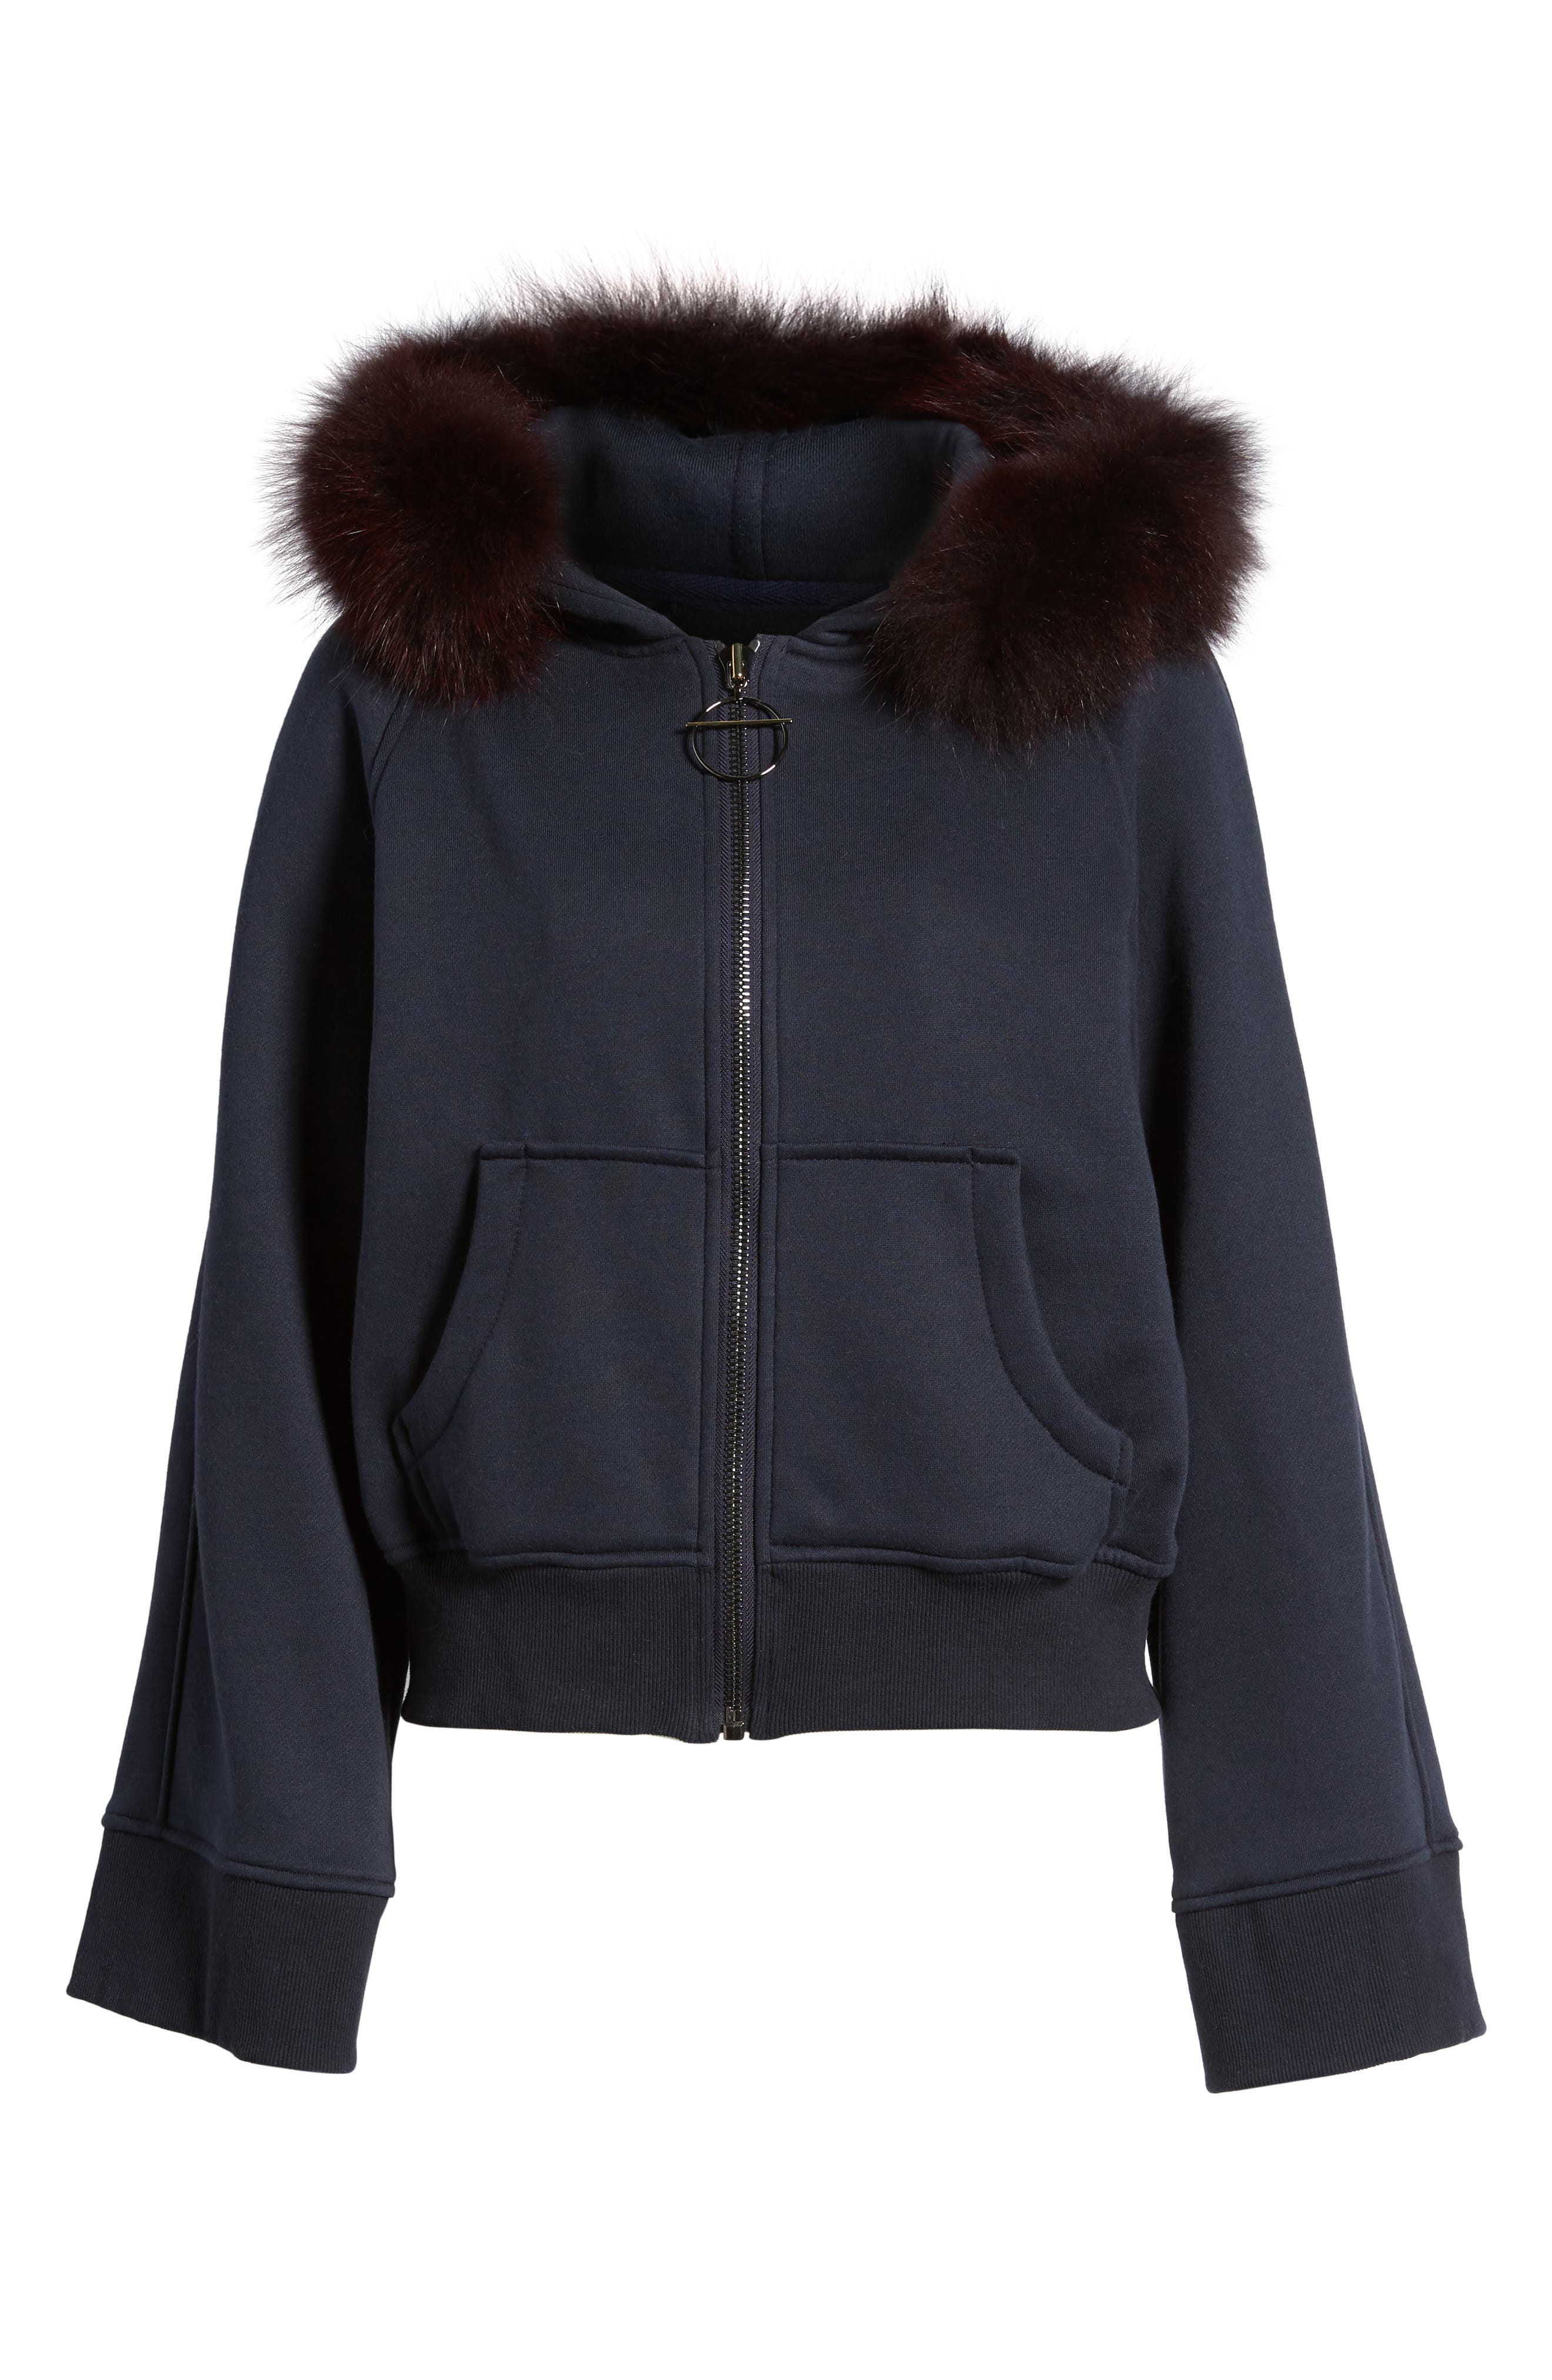 BAGATELLE.CITY The Luxe Hooded Jacket with Genuine Fox Fur Trim,                             Alternate thumbnail 14, color,